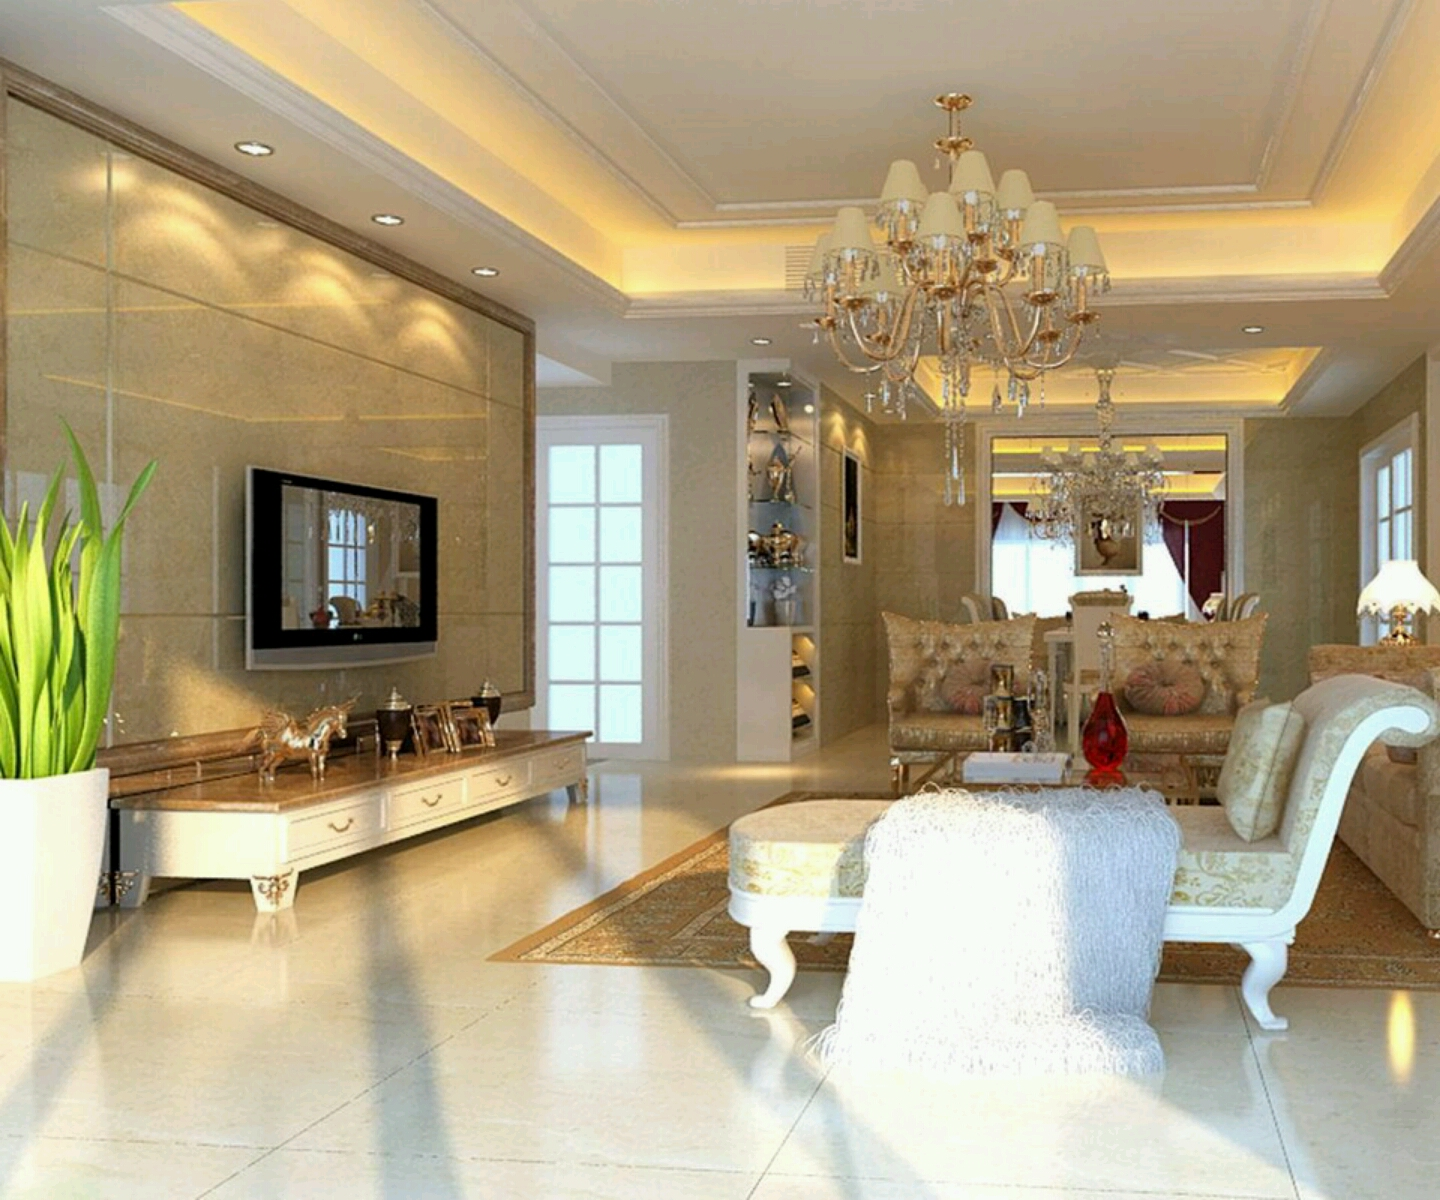 Home decor 2012 luxury homes interior decoration living - Interior design styles living room ...